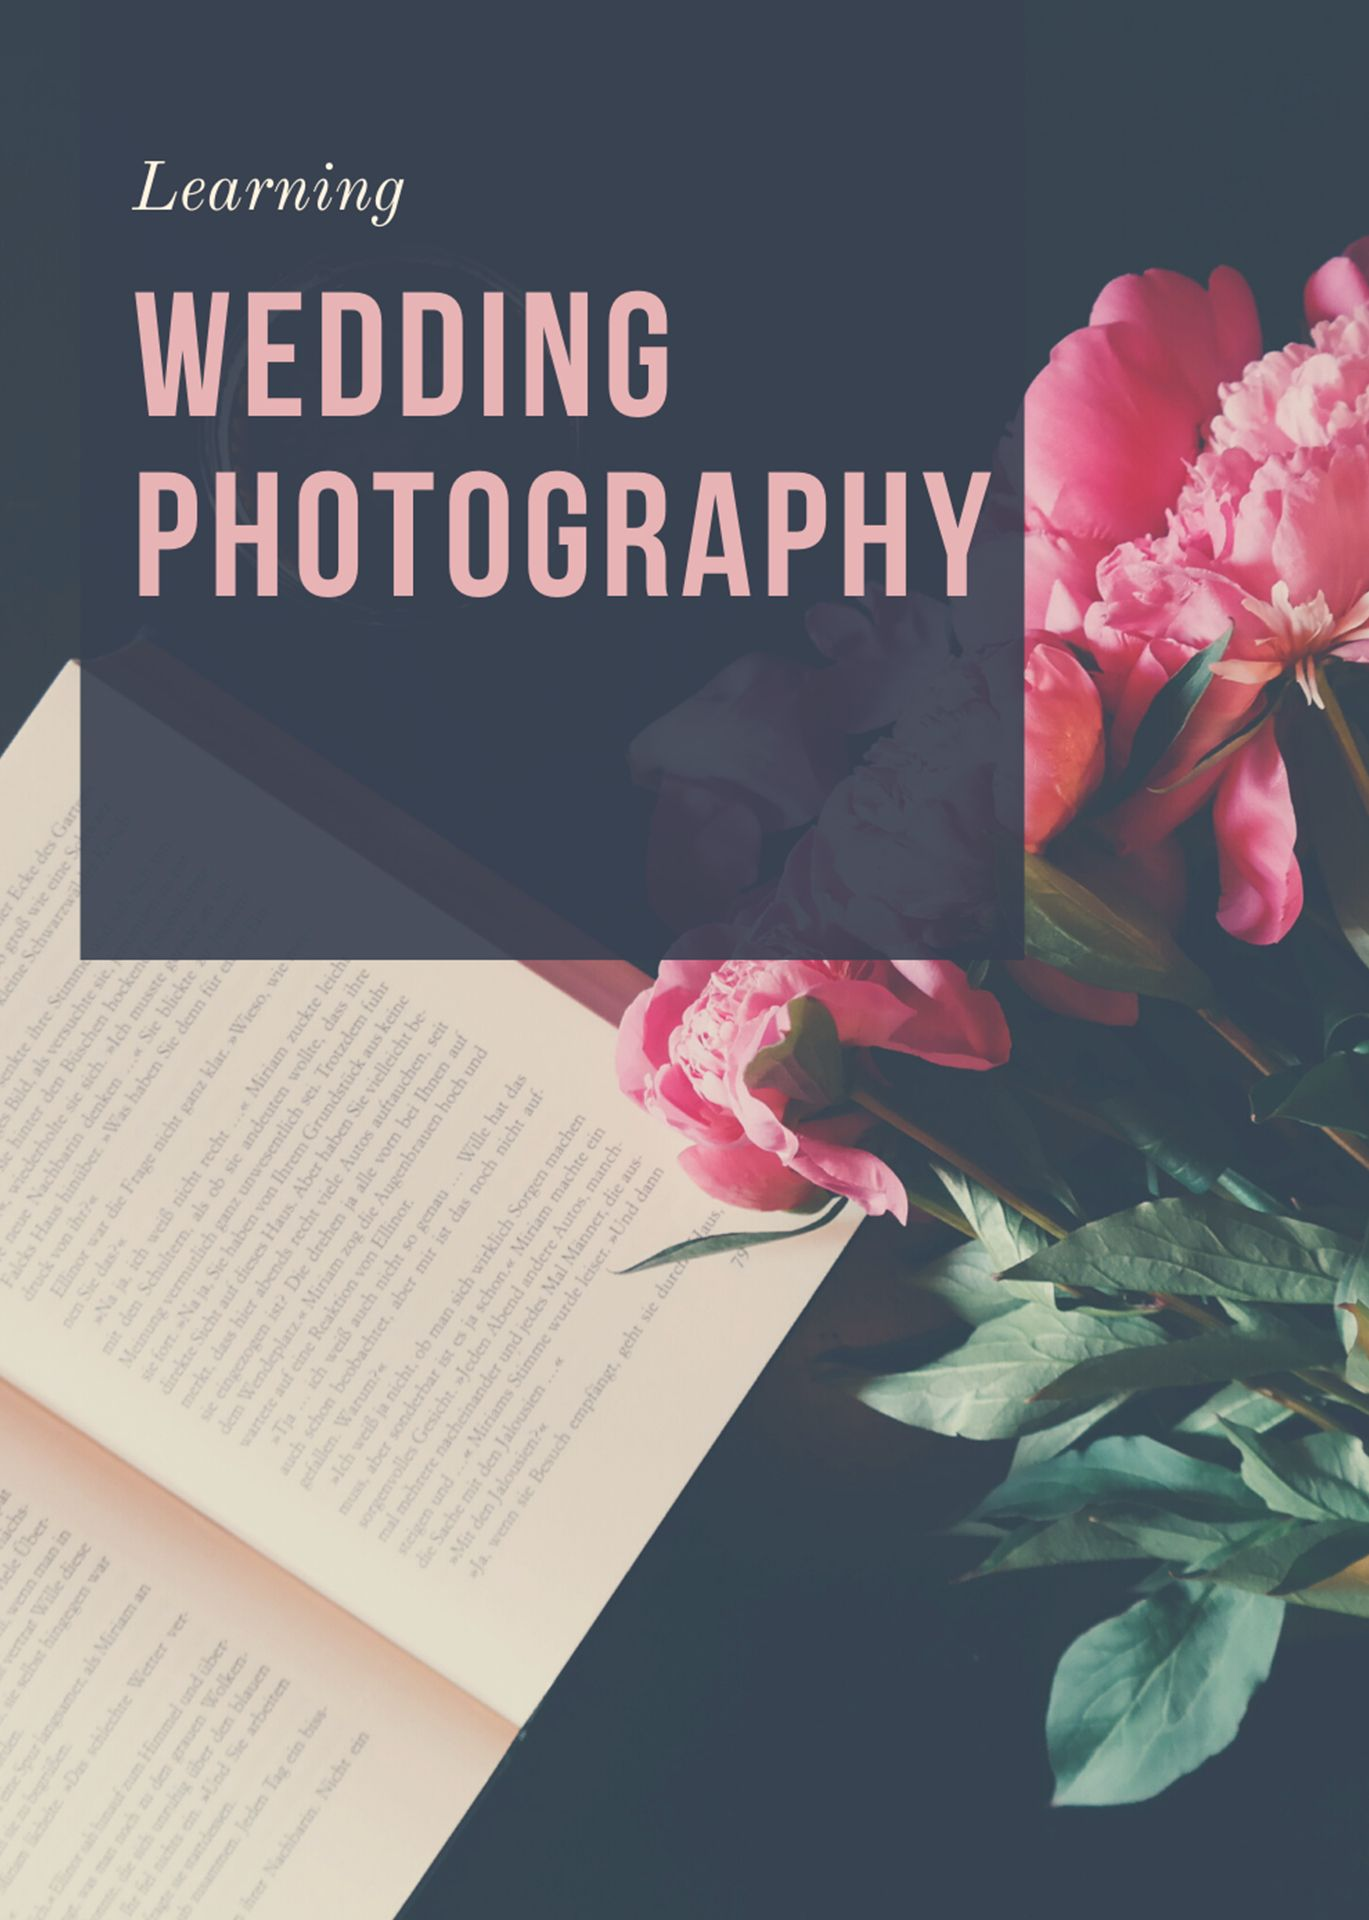 Wedding photography is different from other categories of photography. Usually weddings are one-time event, so there is very little room for error. #photographers #weedingphotographers #photographytips #tutorial #weddingphotographytips